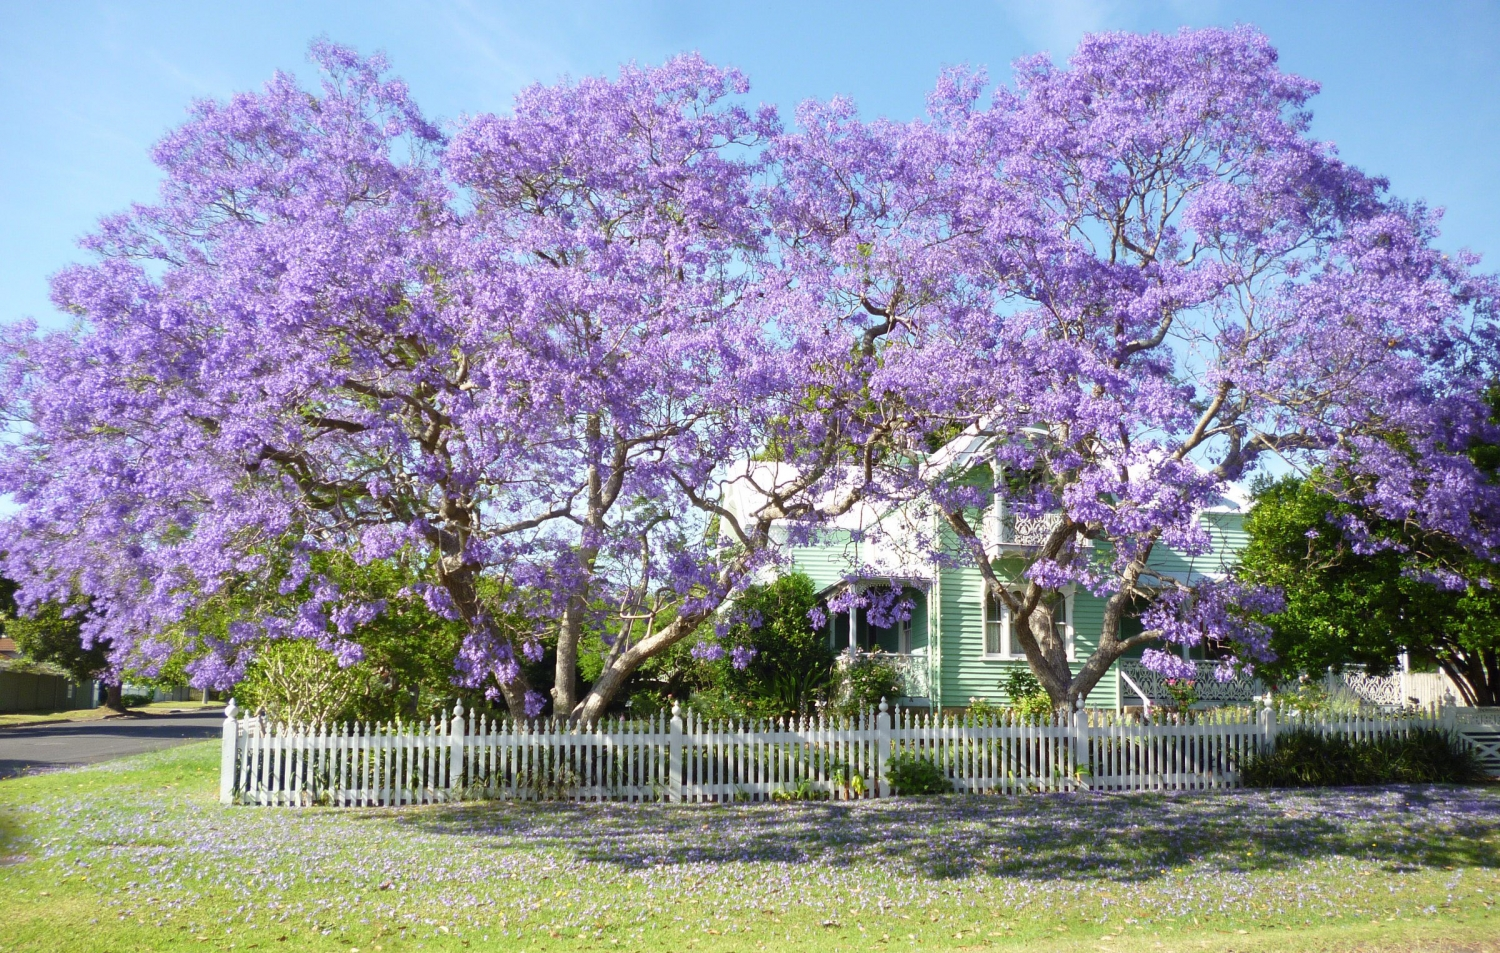 Jacarandas in flower at Meroogal